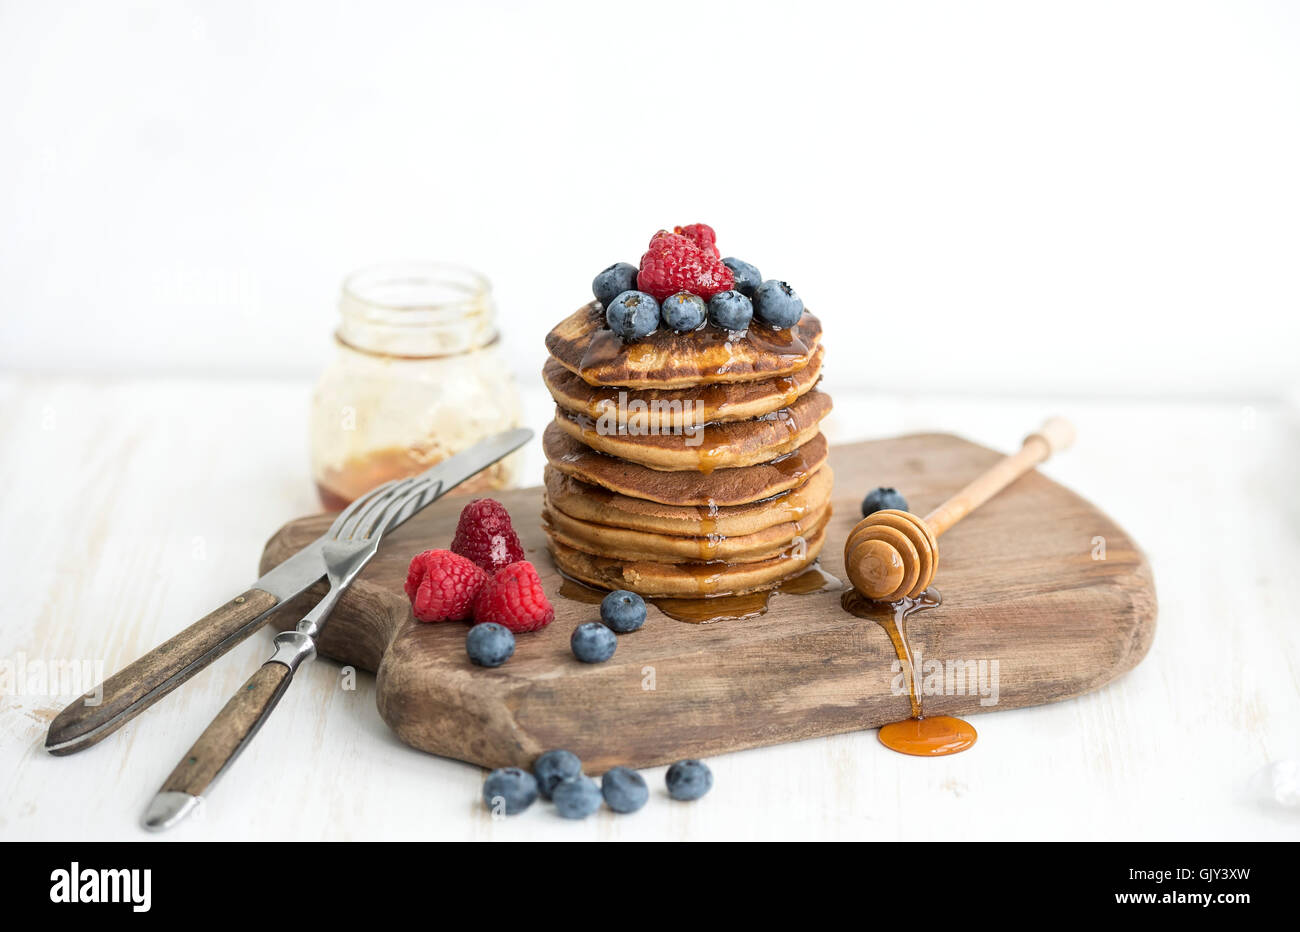 Homemade pancakes with fresh garden berries, honey on wooden board over white painted wooden background, selective - Stock Image